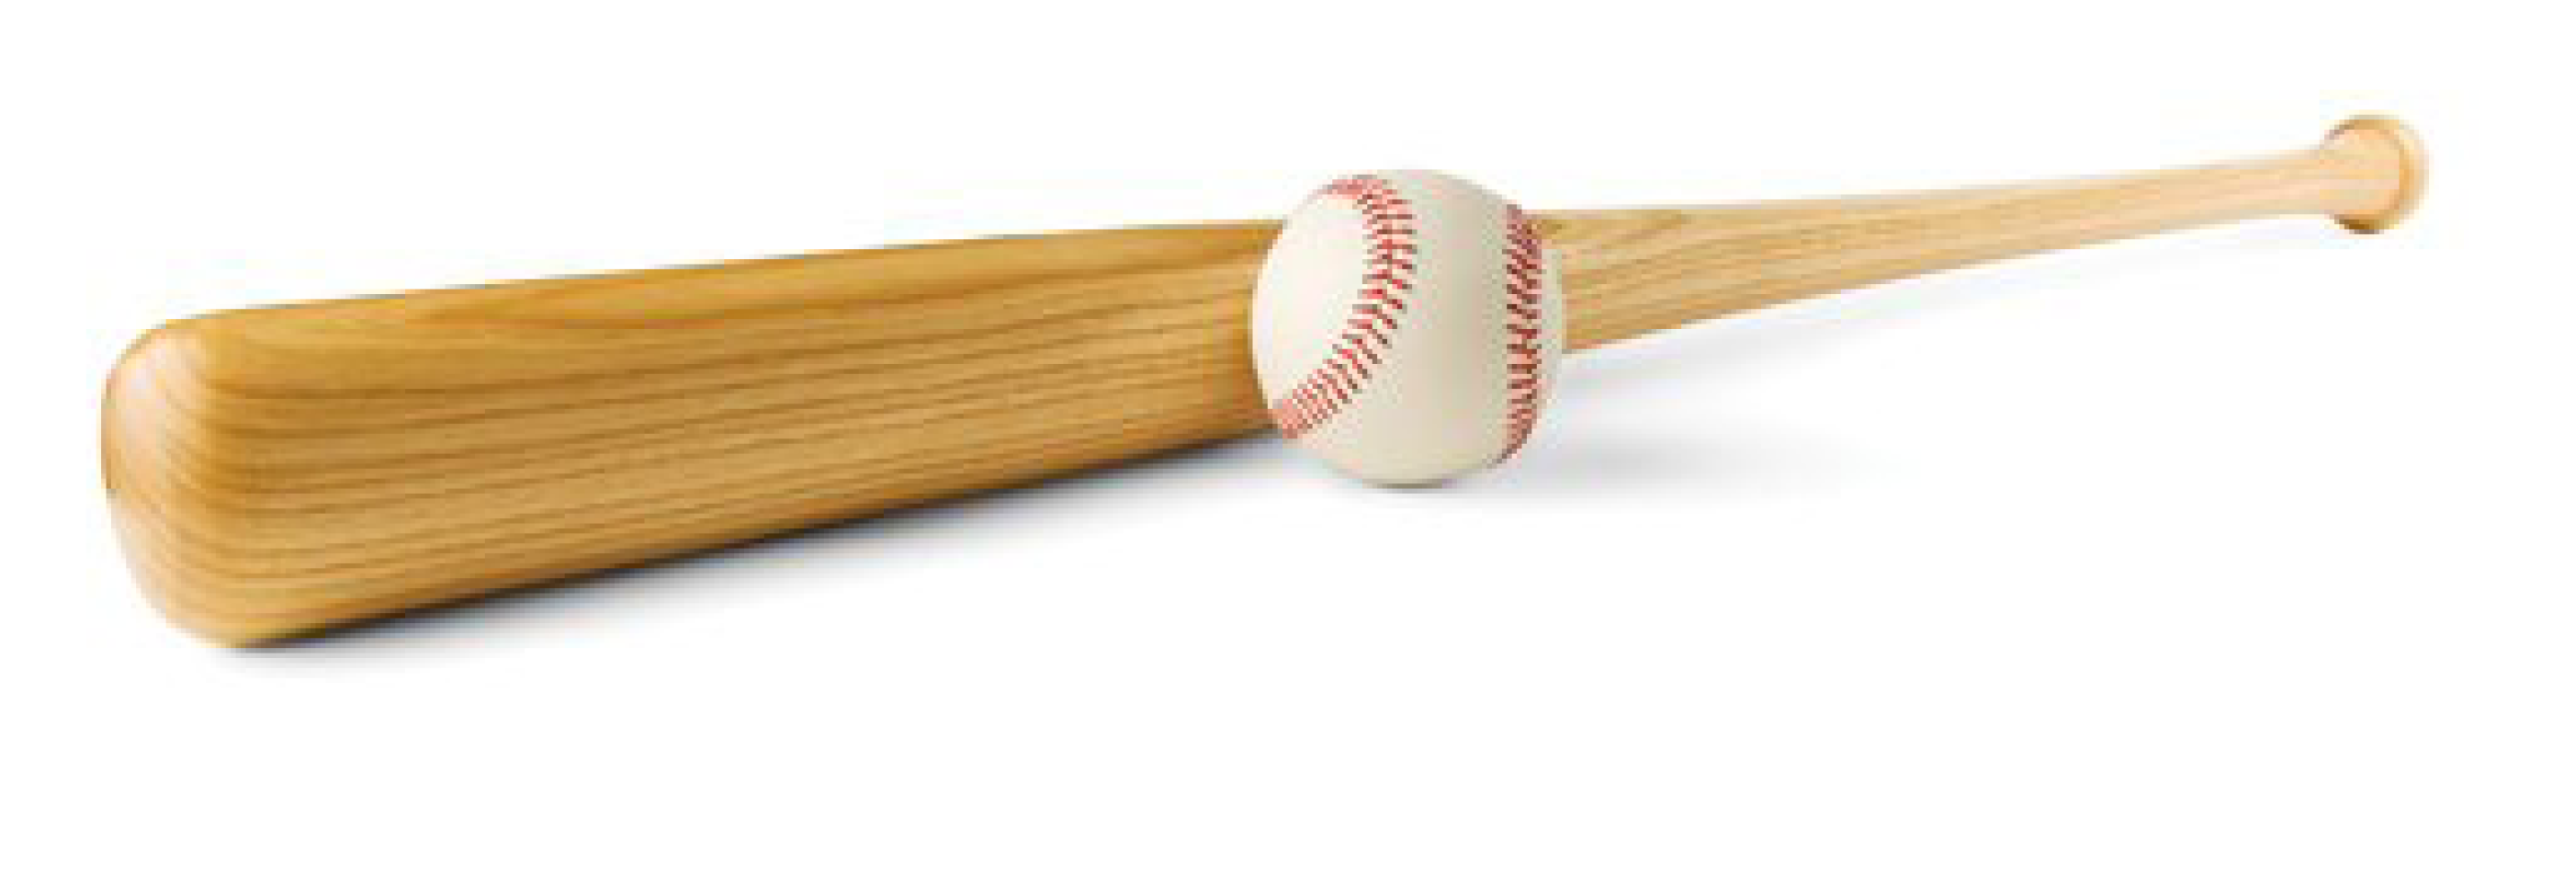 Baseball Bat And Ball Png image #35382